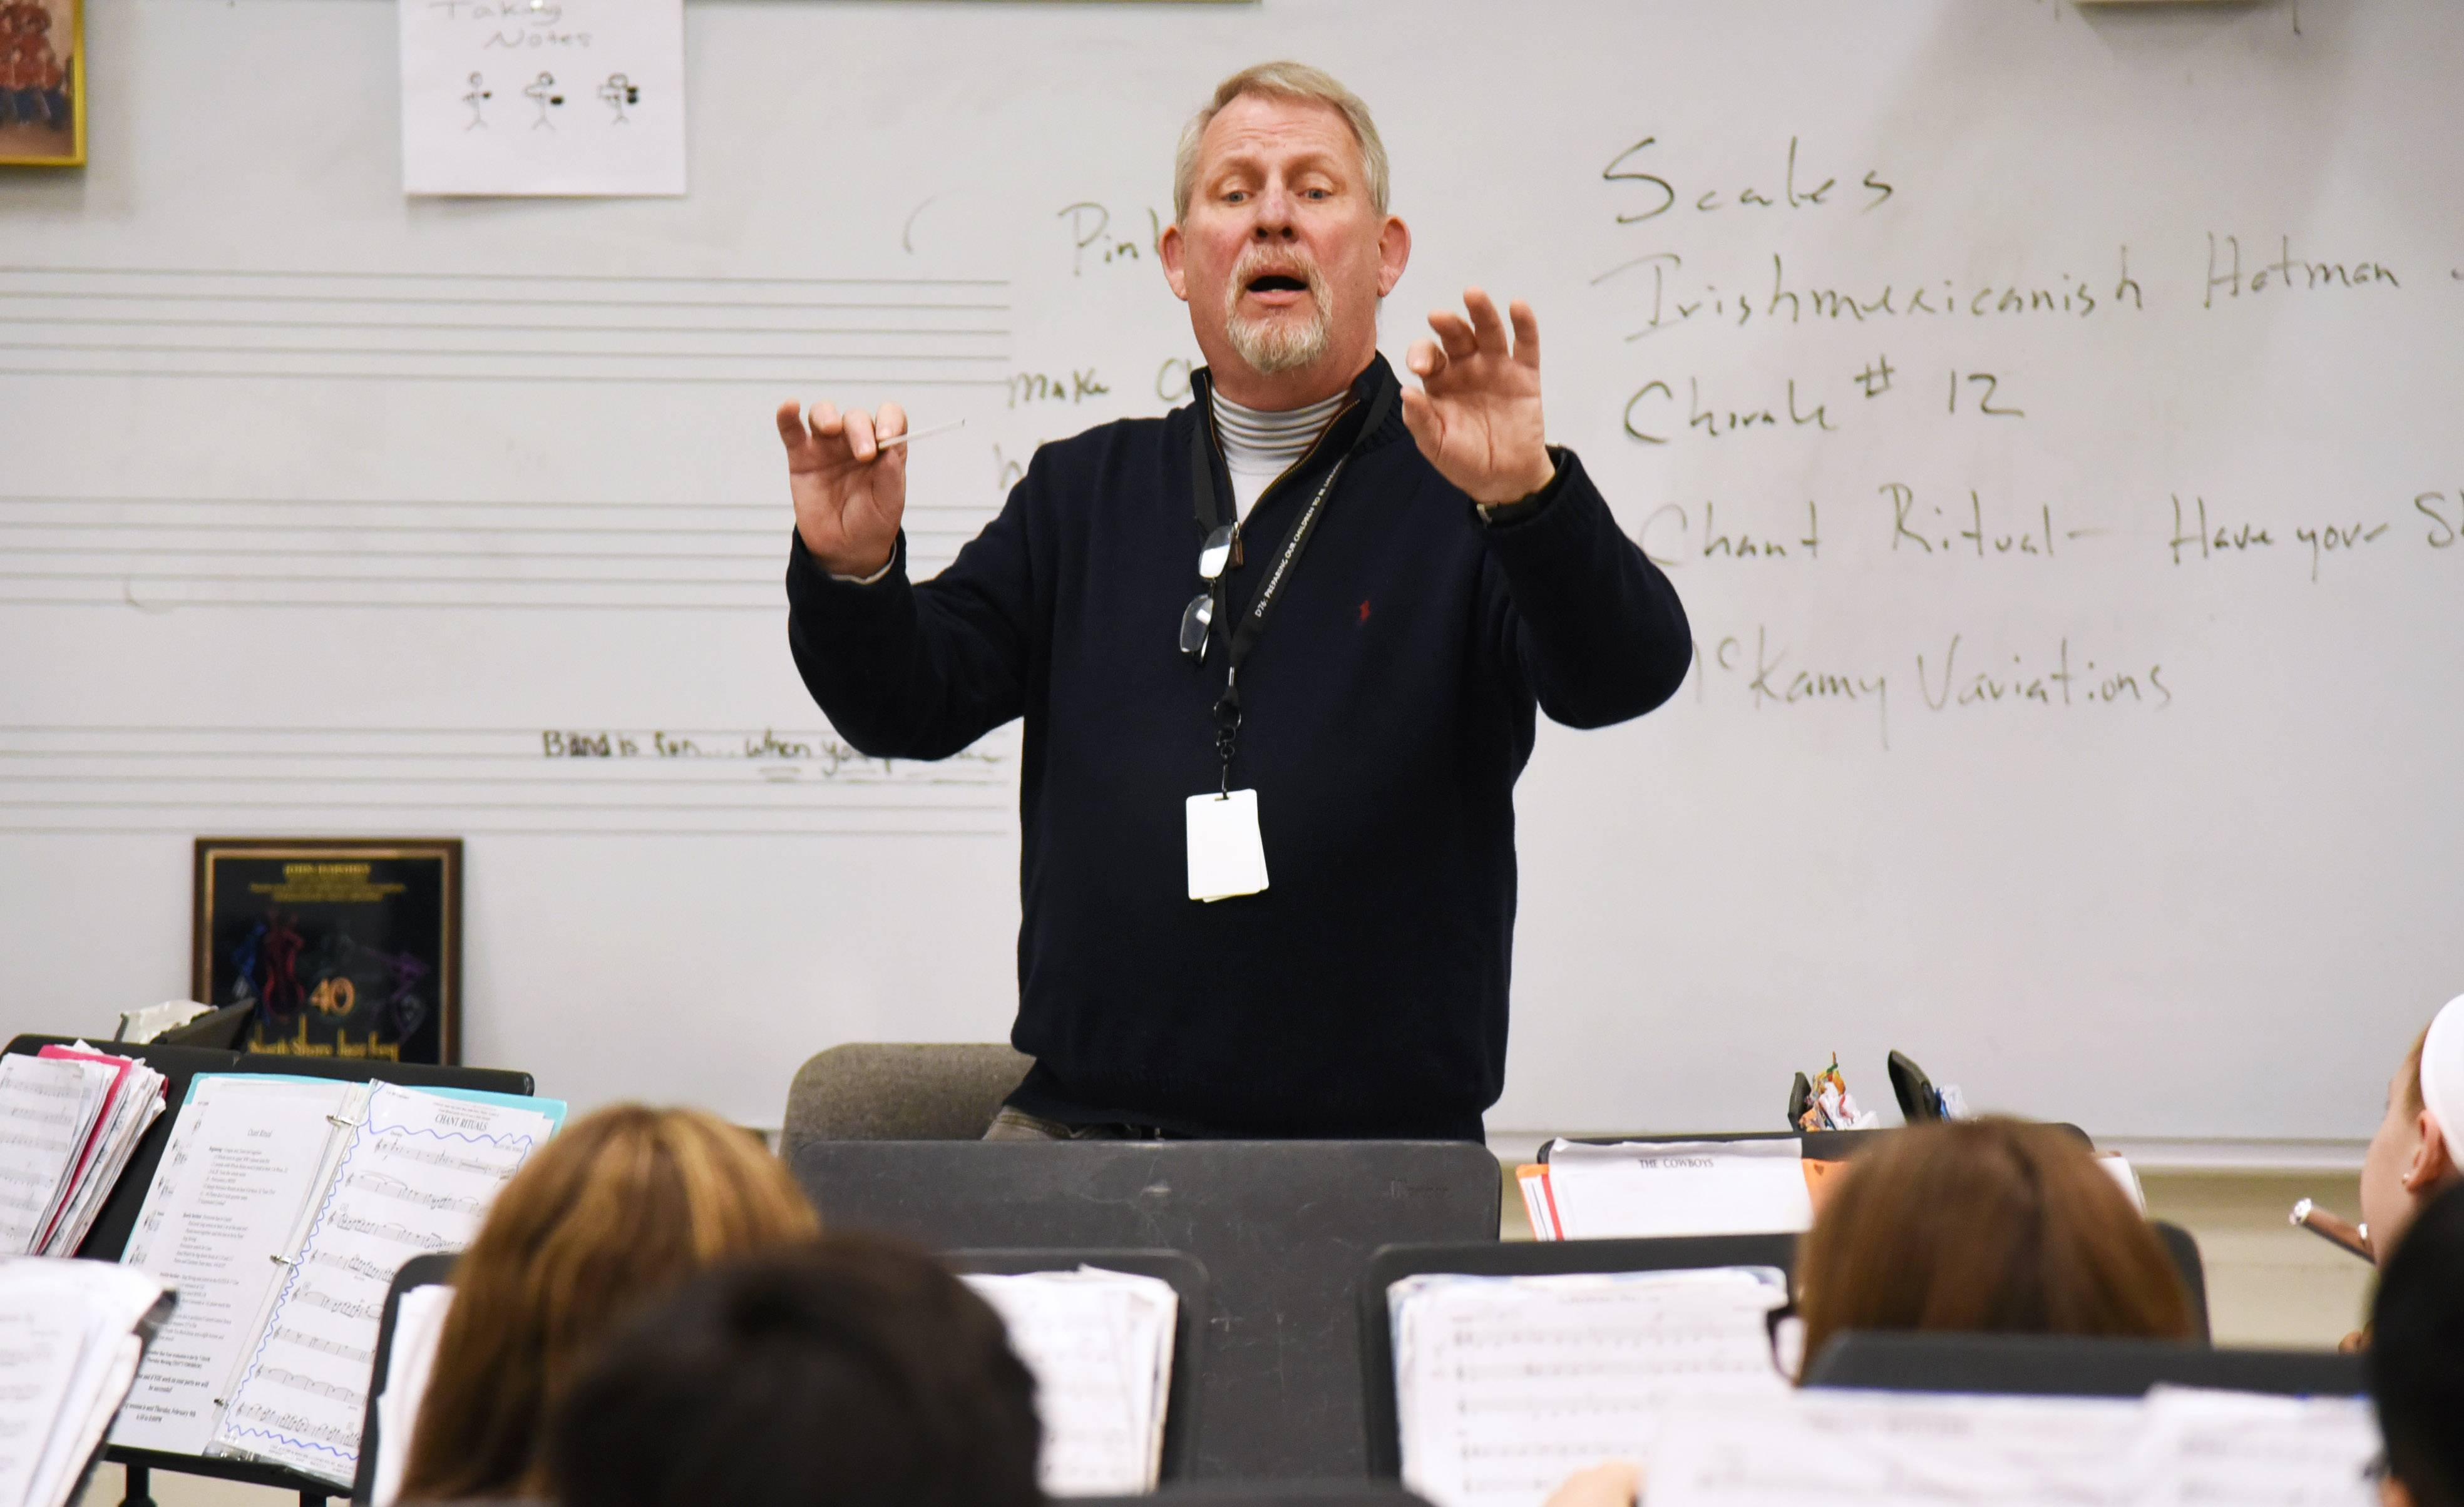 West Oak band director ready for swan song after 29 years